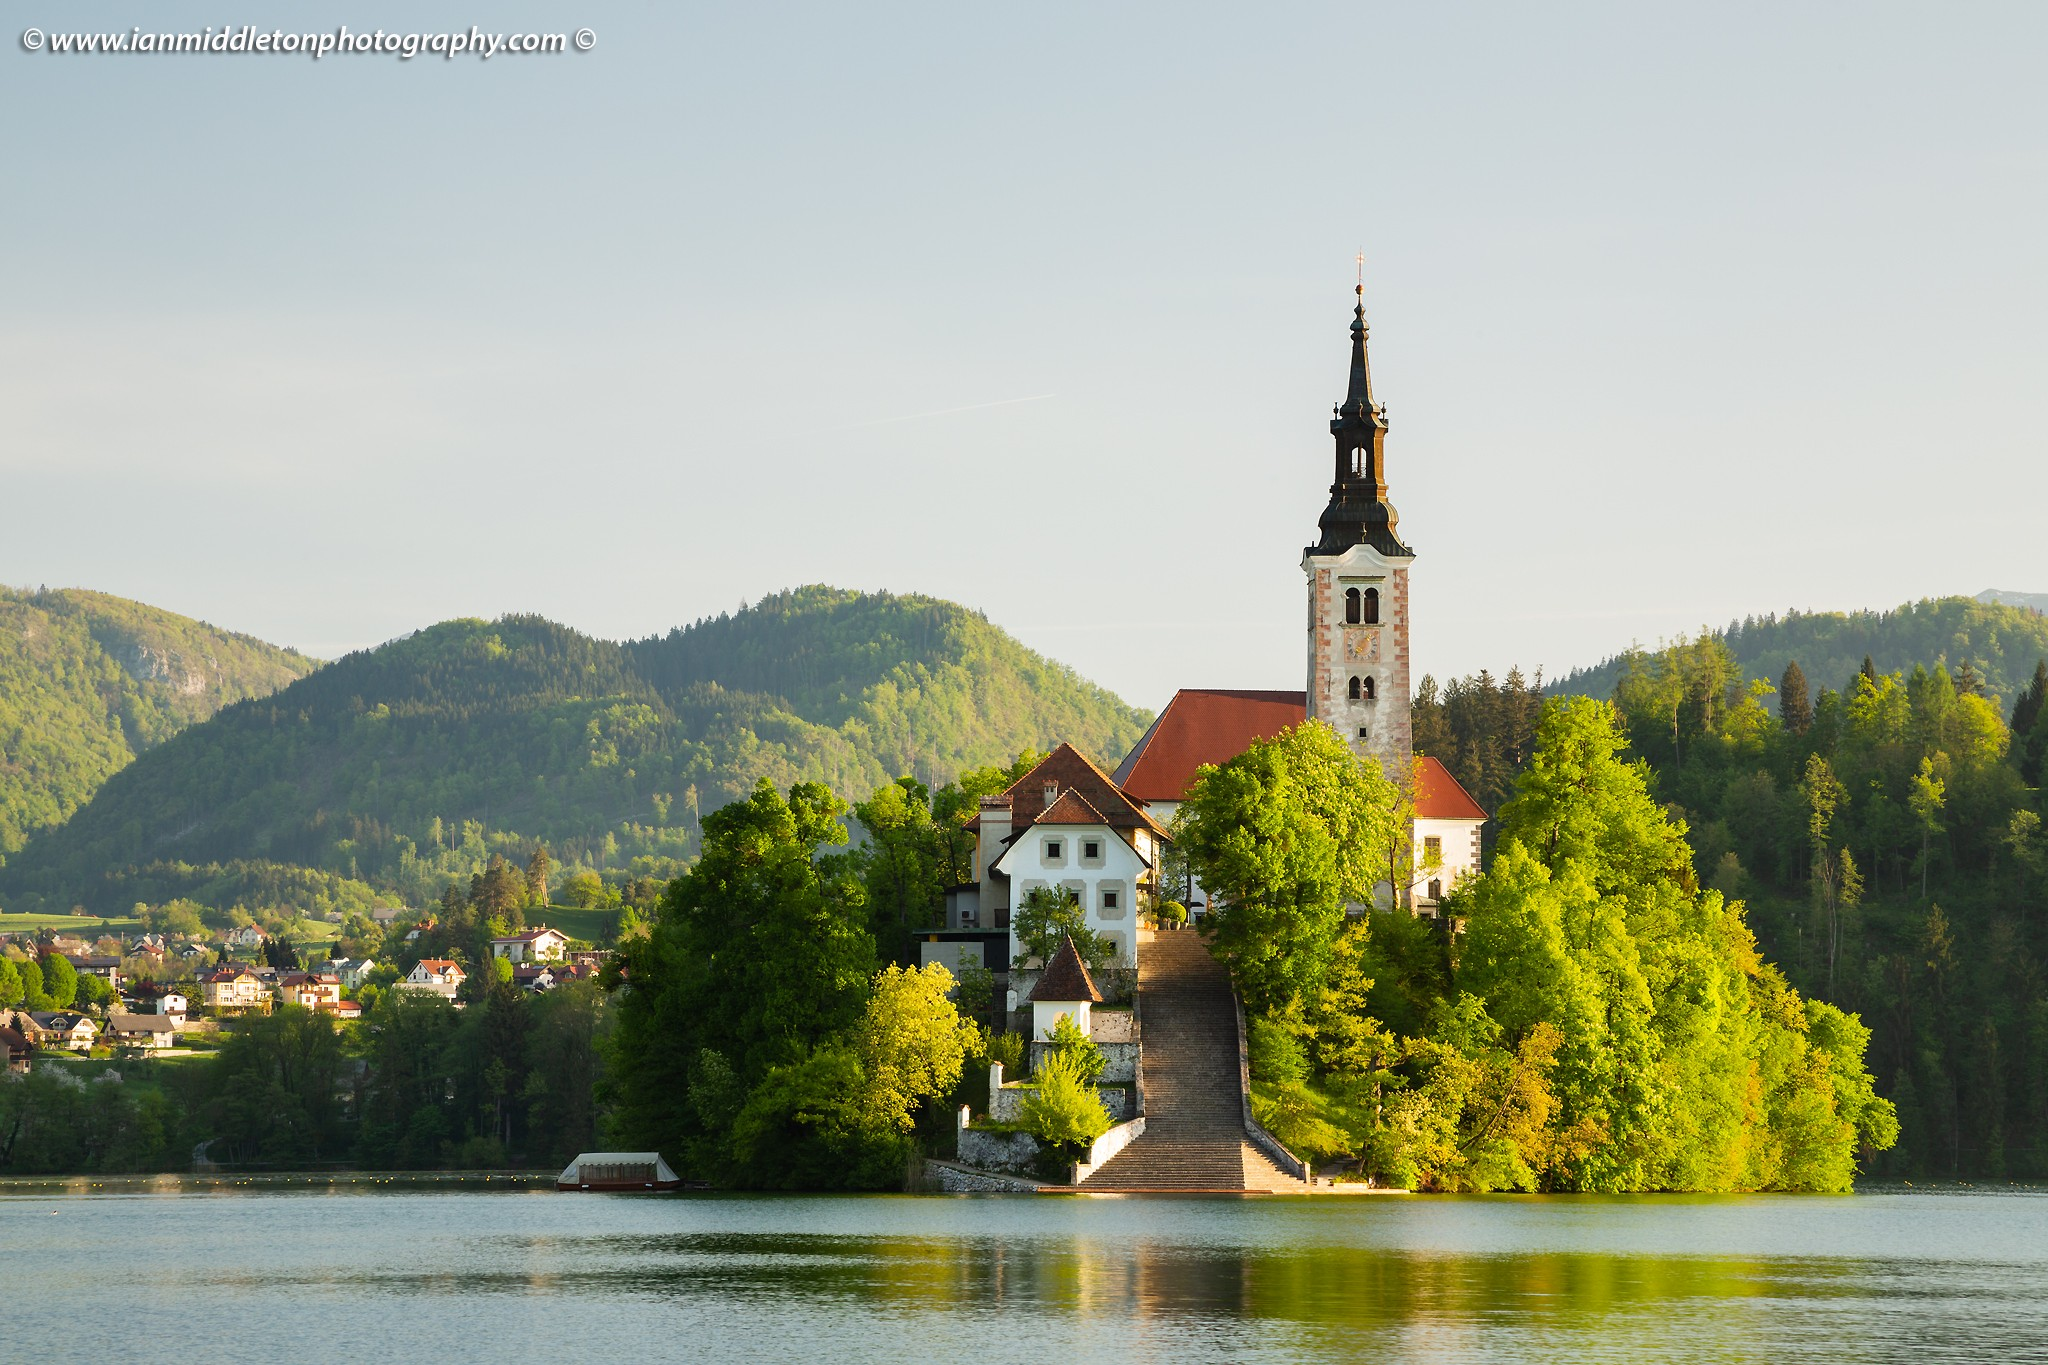 Spring morning view across Lake Bled to the island church of the assumption of saint mary, Slovenia.